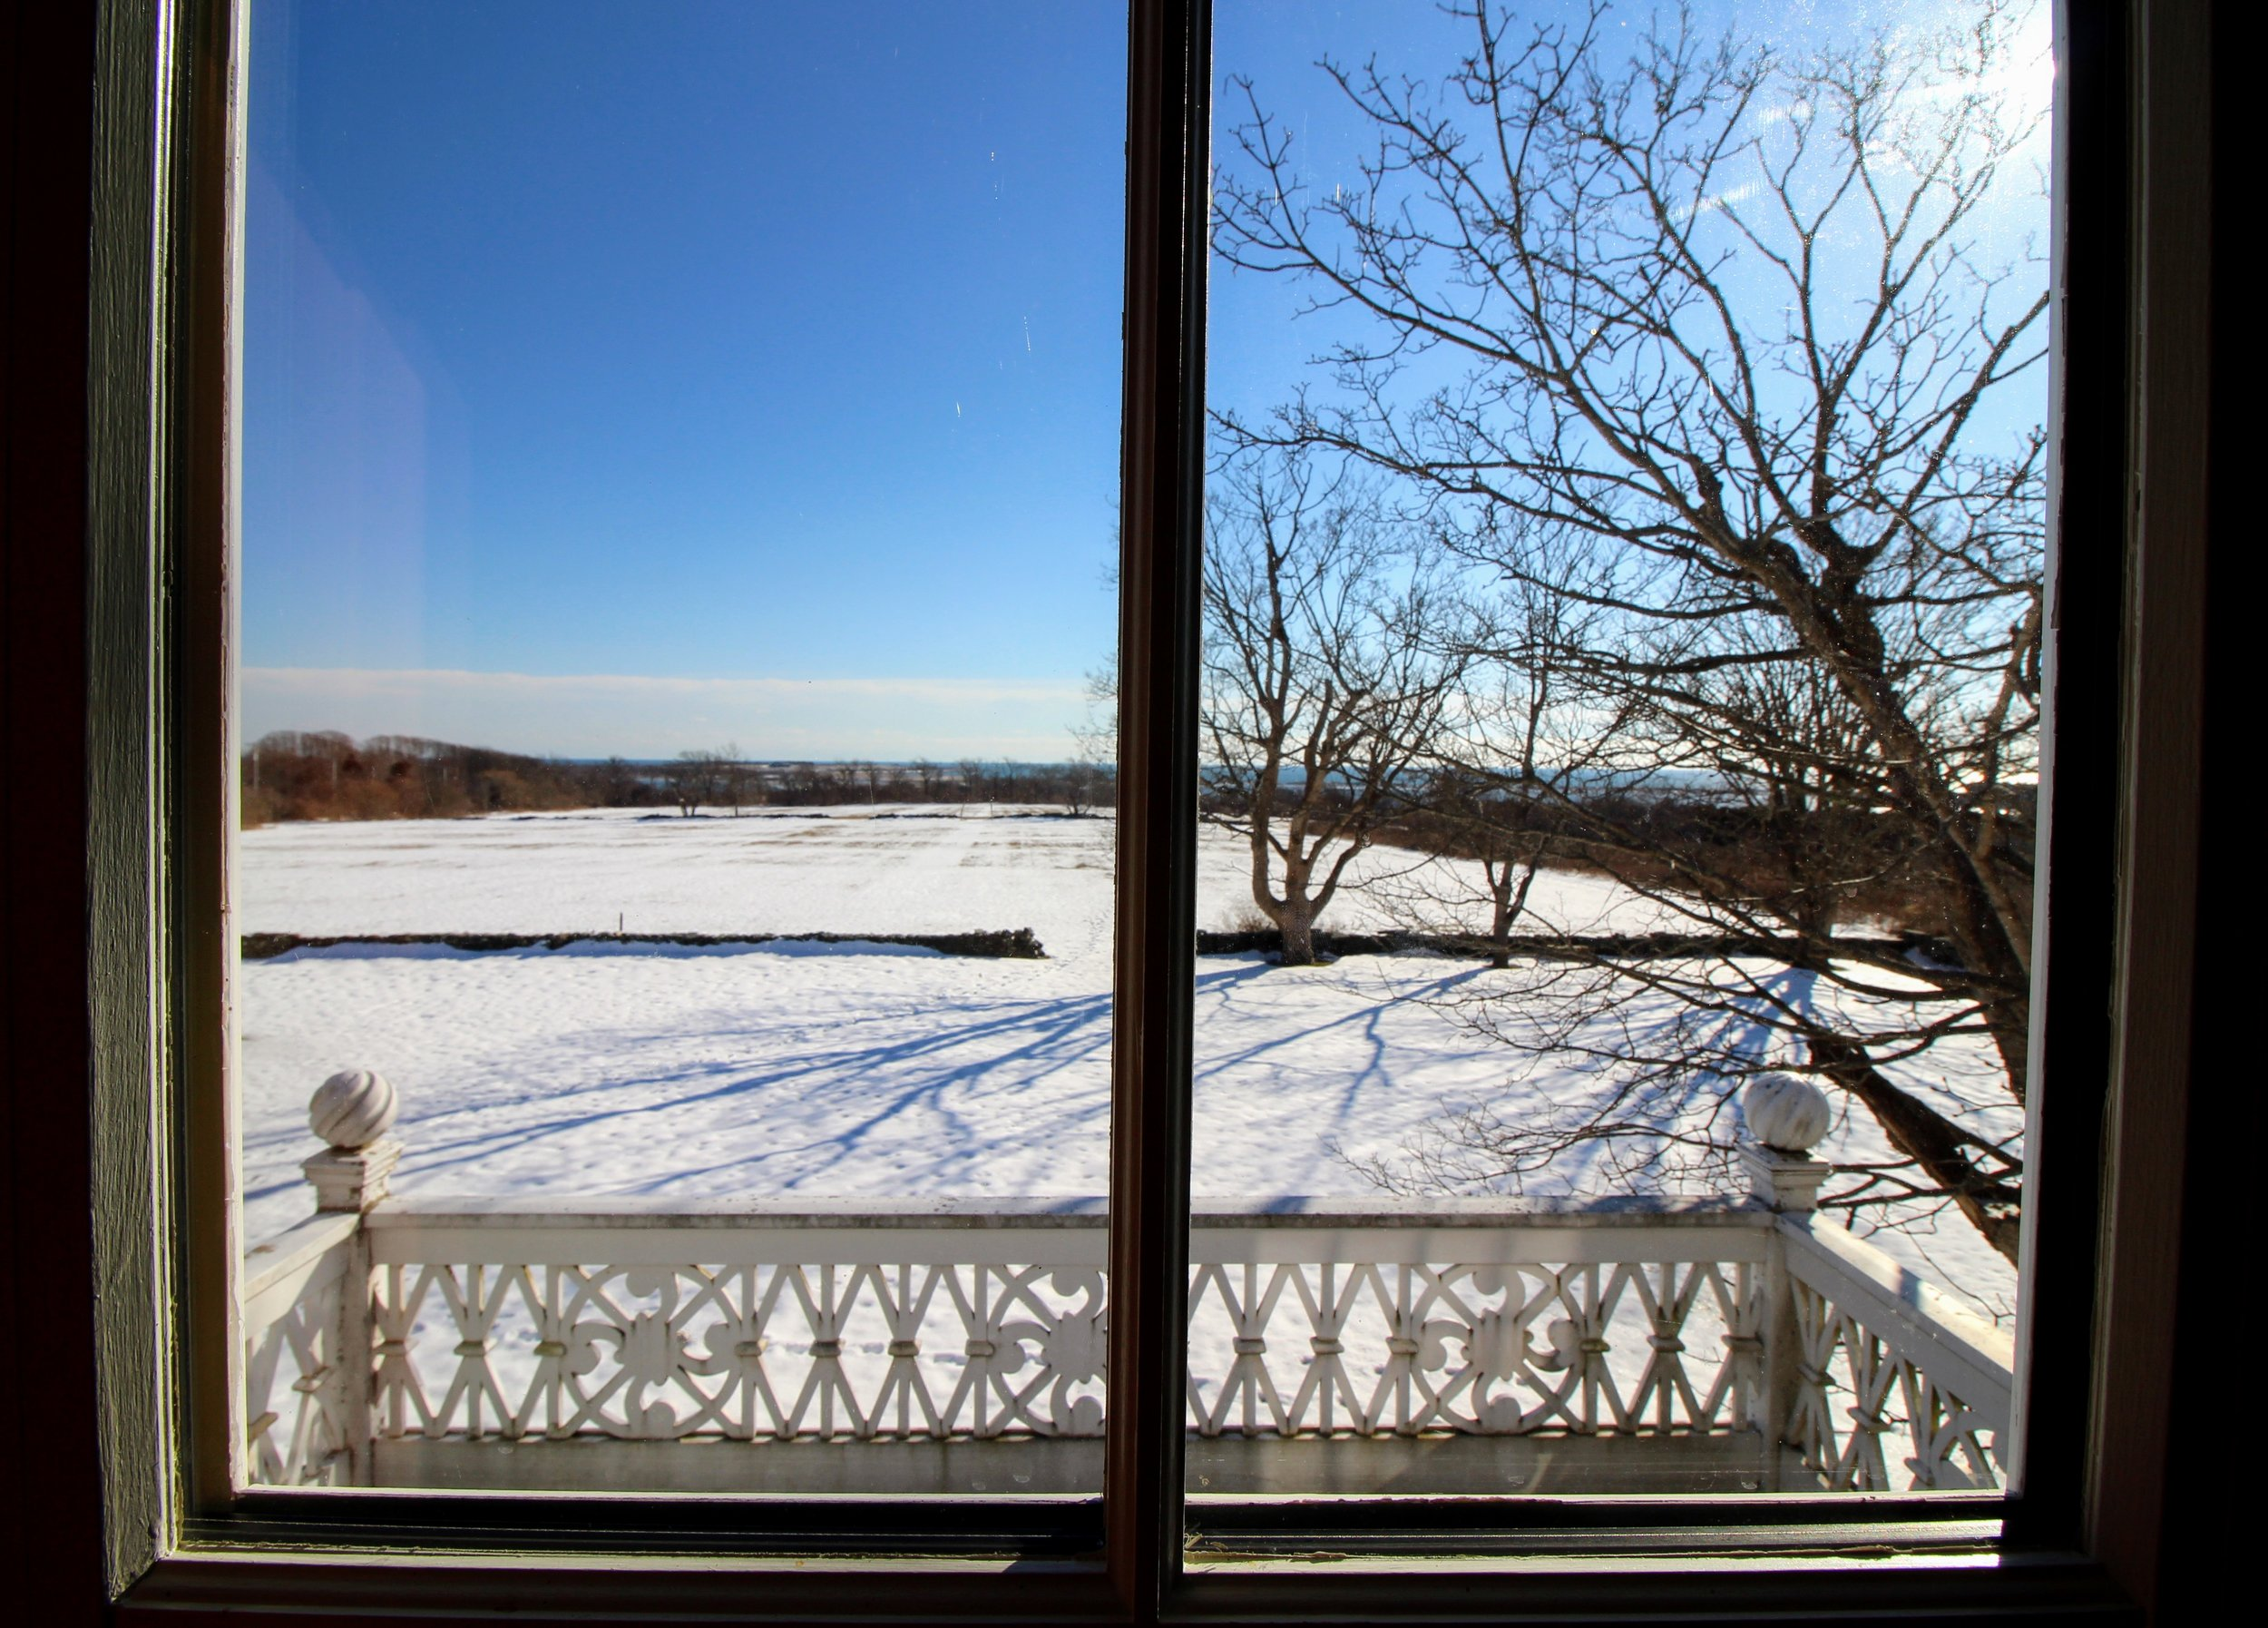 2-14-17 farmhouse window view.jpg